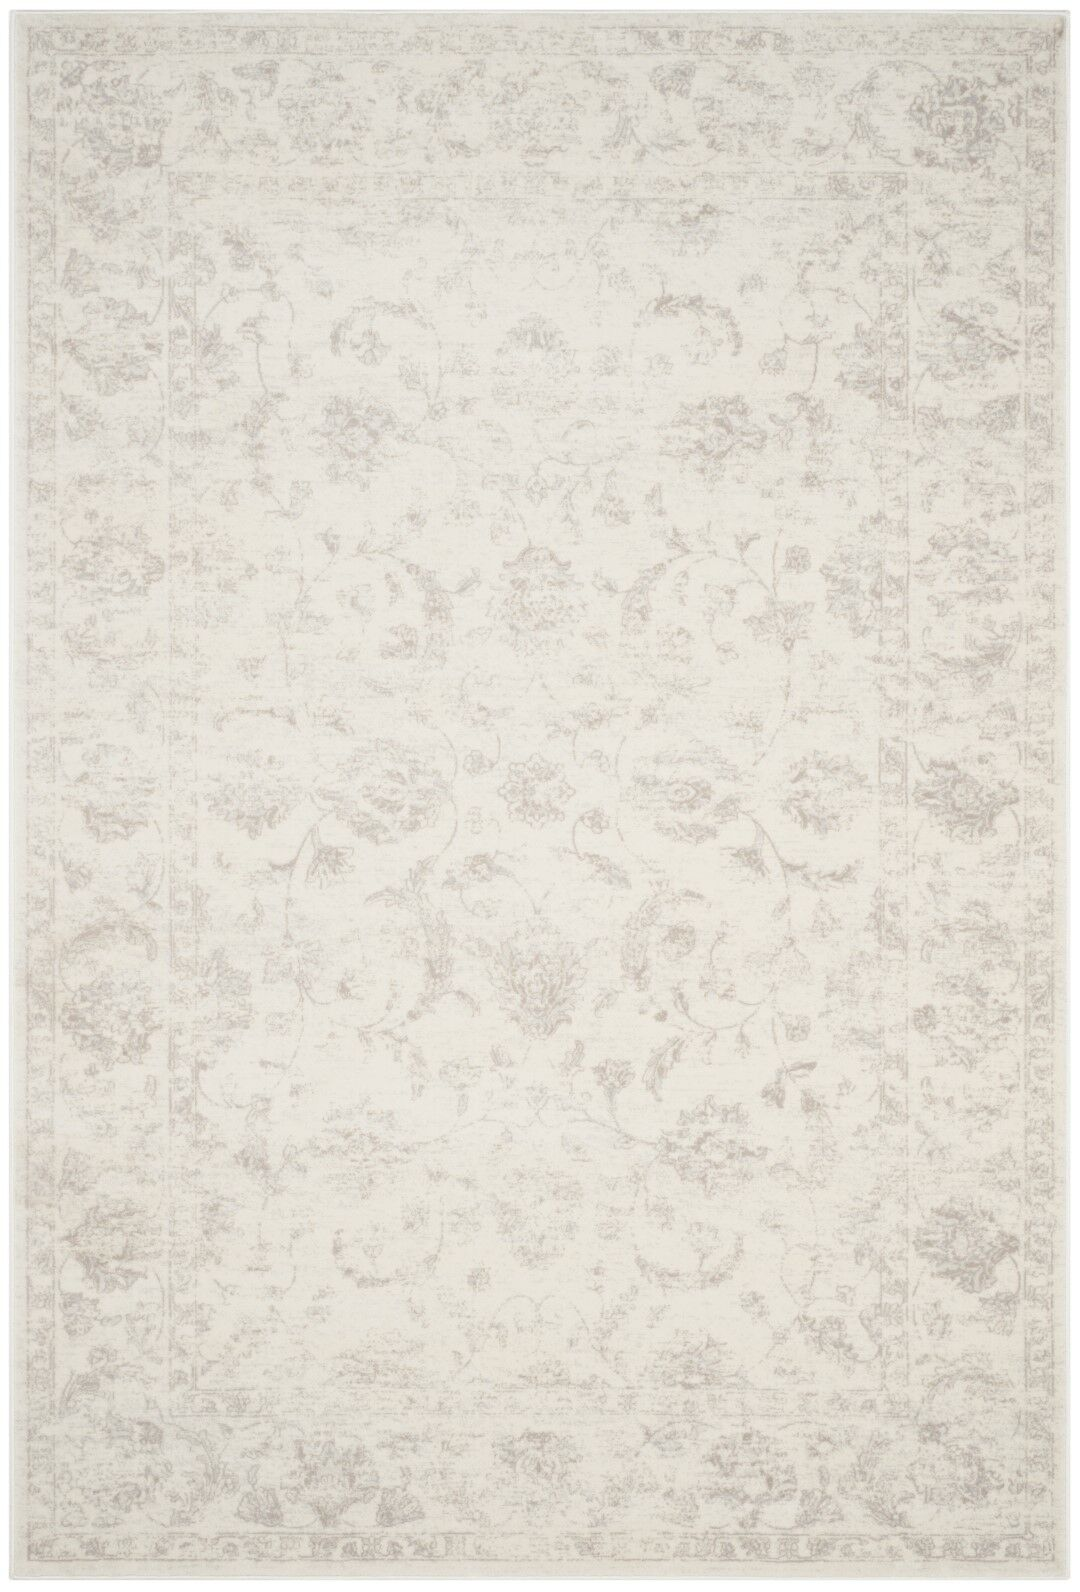 Akron Creek Cream/Light Gray Area Rug Rug Size: Rectangle 9' x 12'